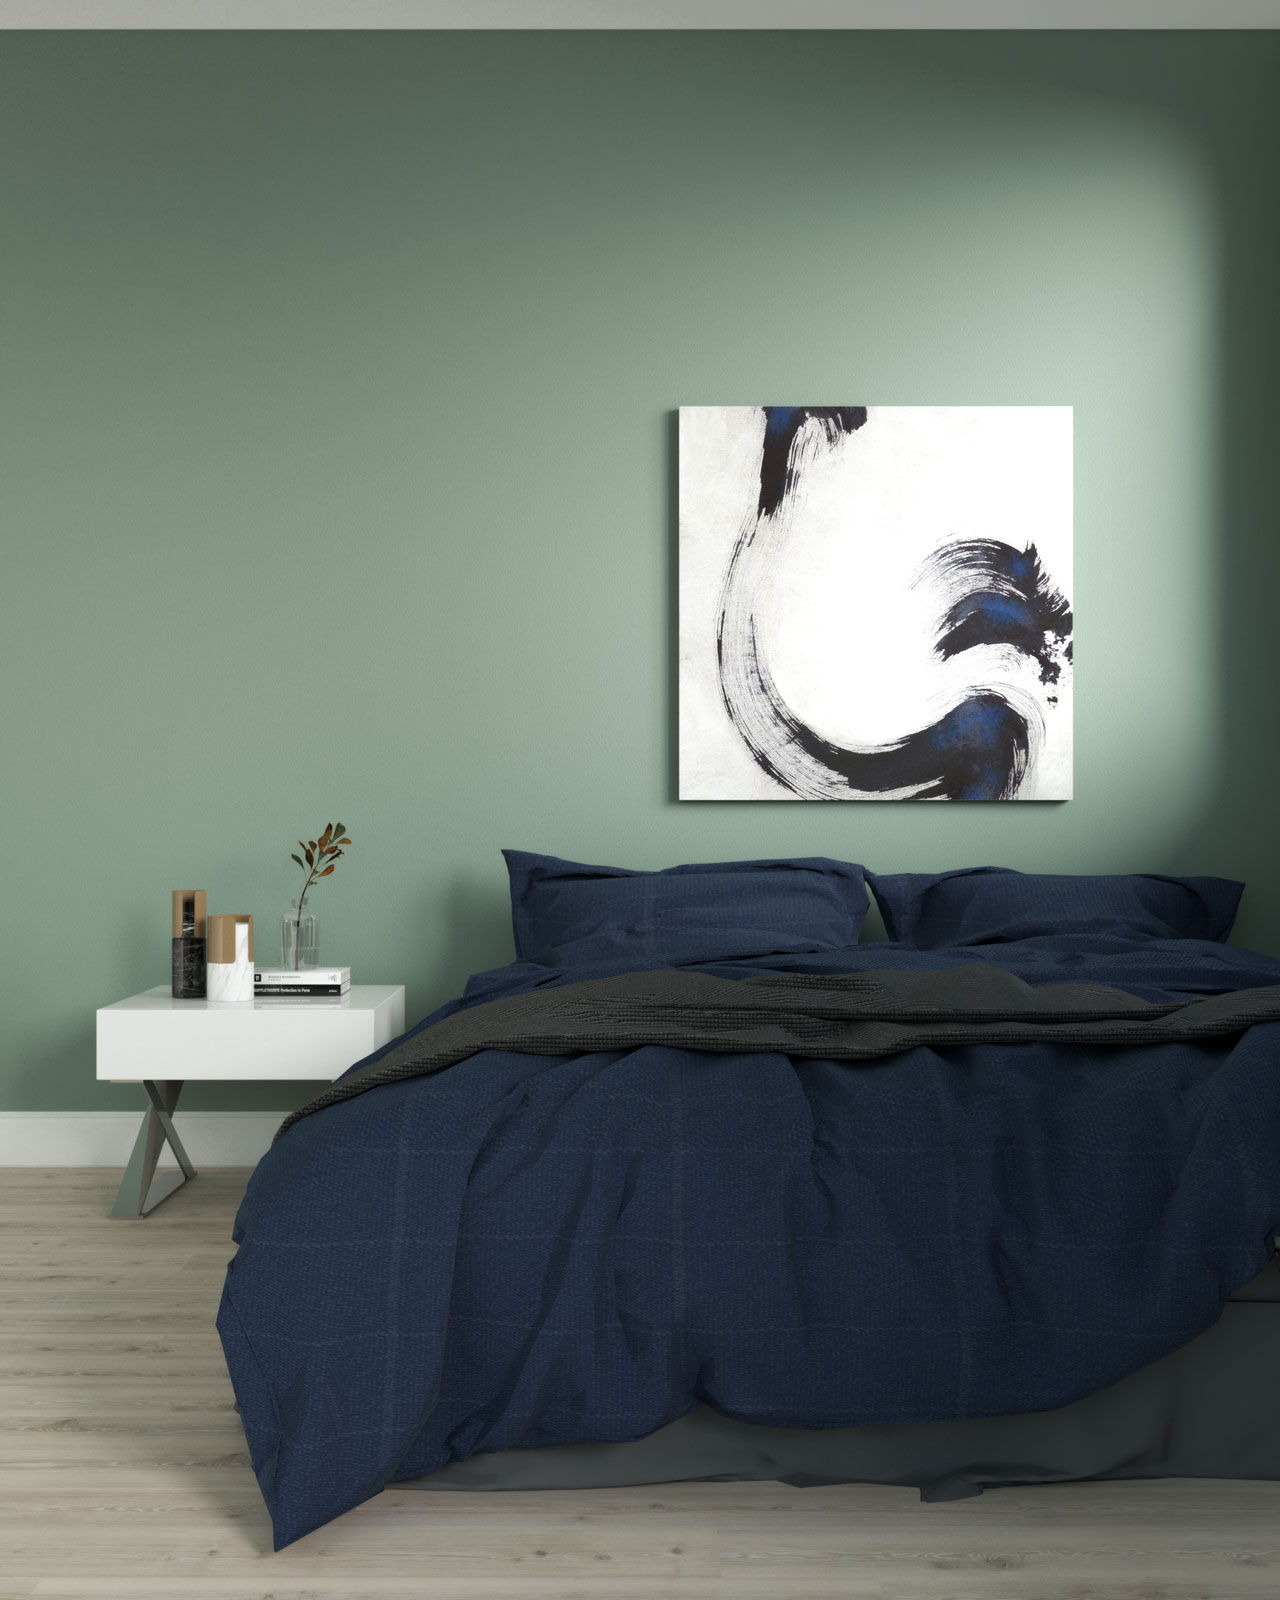 Pale green and navy bedroom ideas